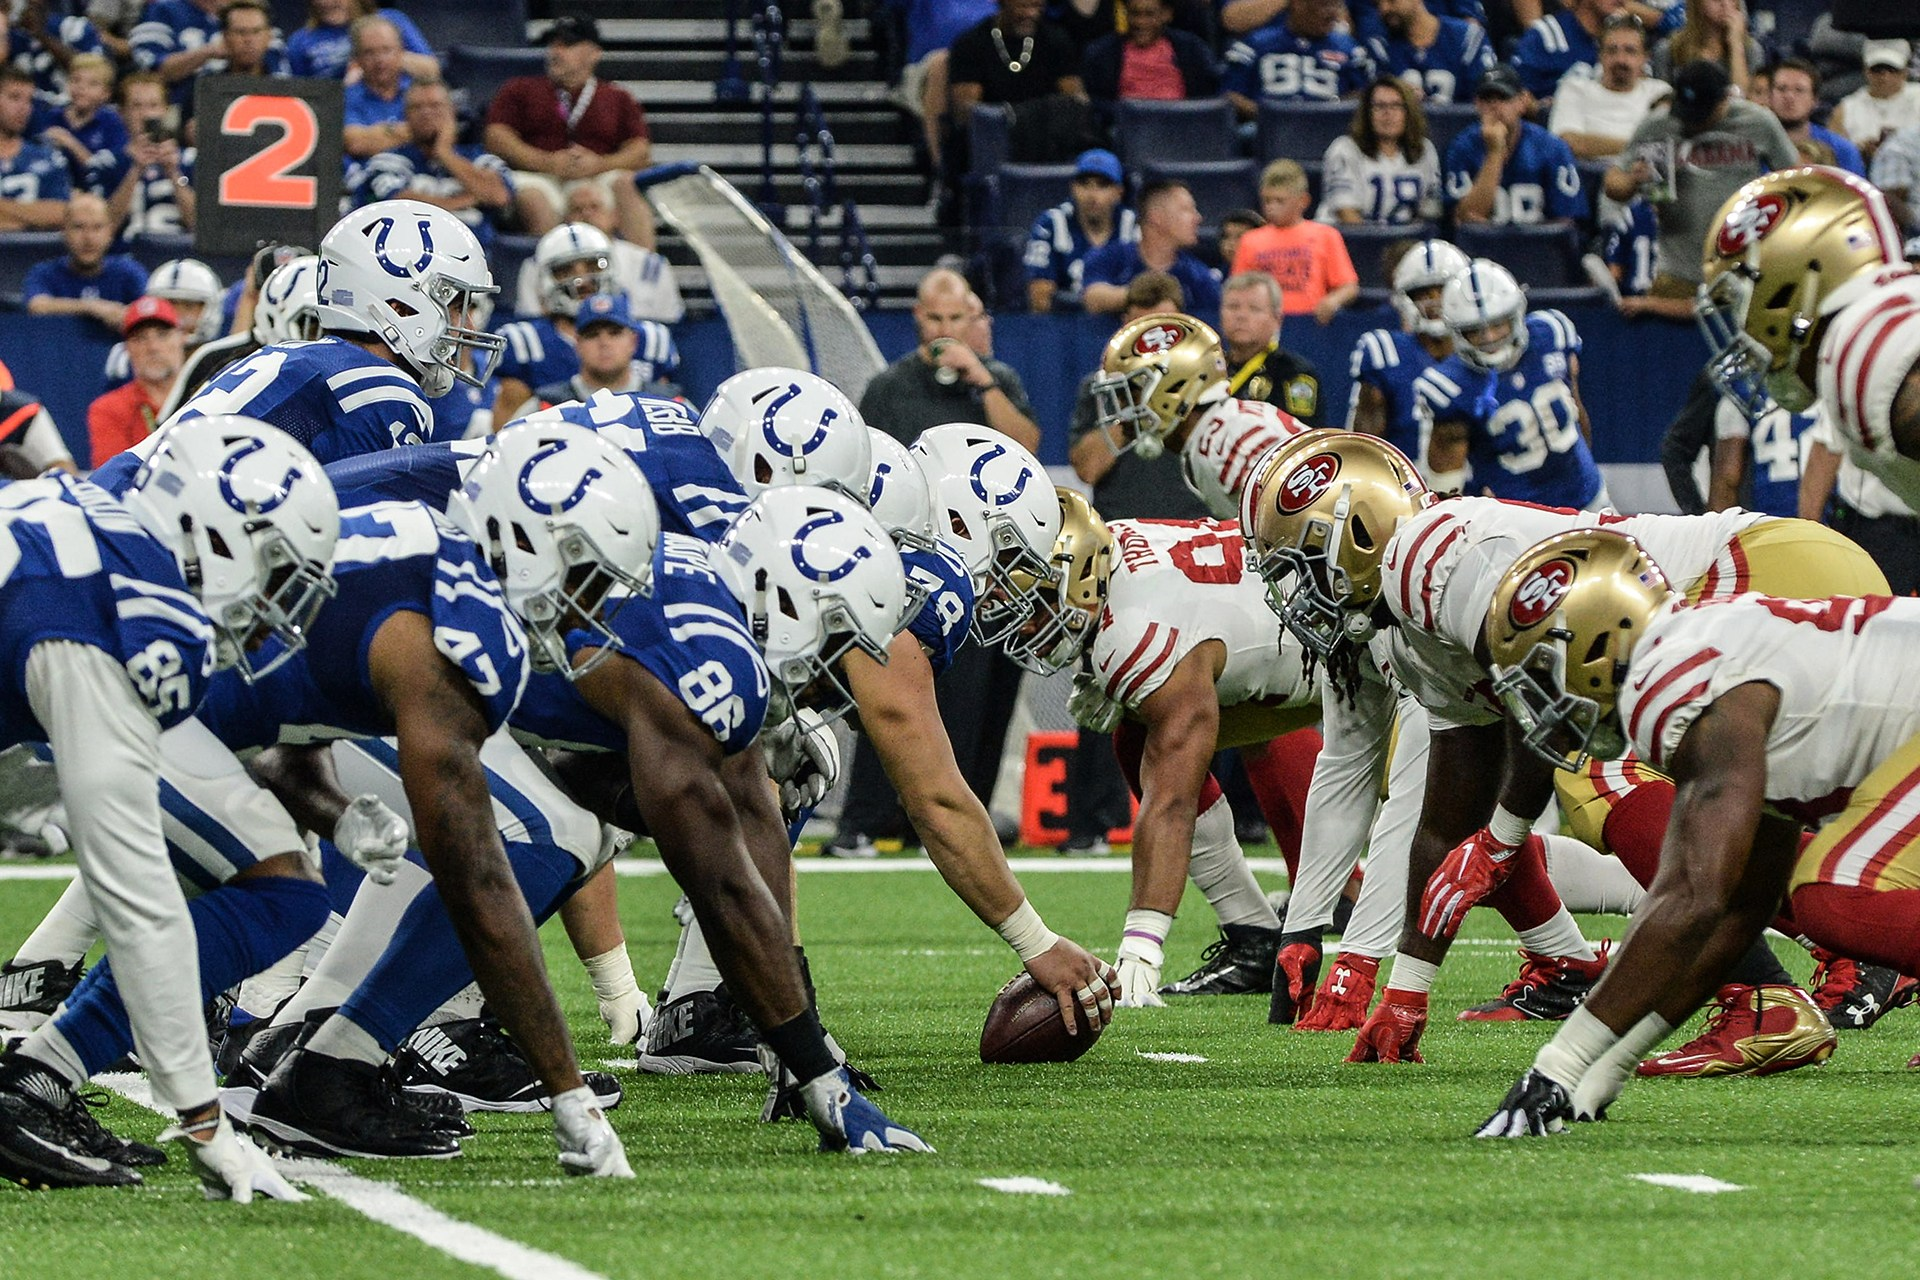 Register to win Colts Tickets